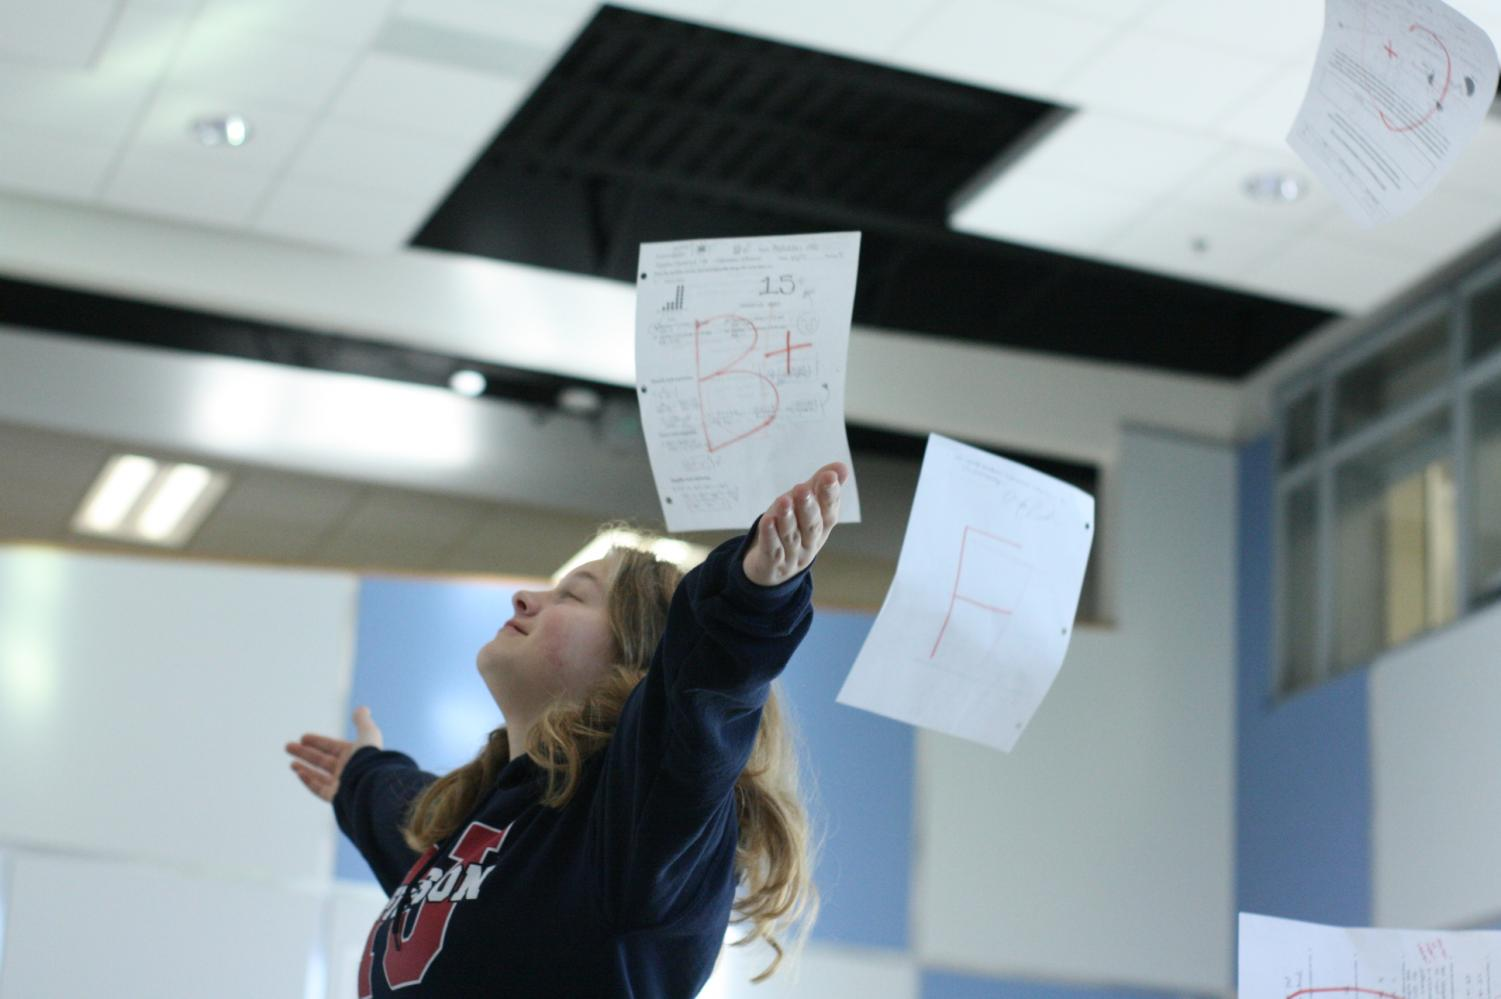 Freshman, Claire Wilson stands in Nobel Commons as she is showered with graded papers. Grades are an integral part of student life at Jefferson, but sometimes they don't always go our way (as seen in the picture). In those cases, is it alright to ask for a grade bump?